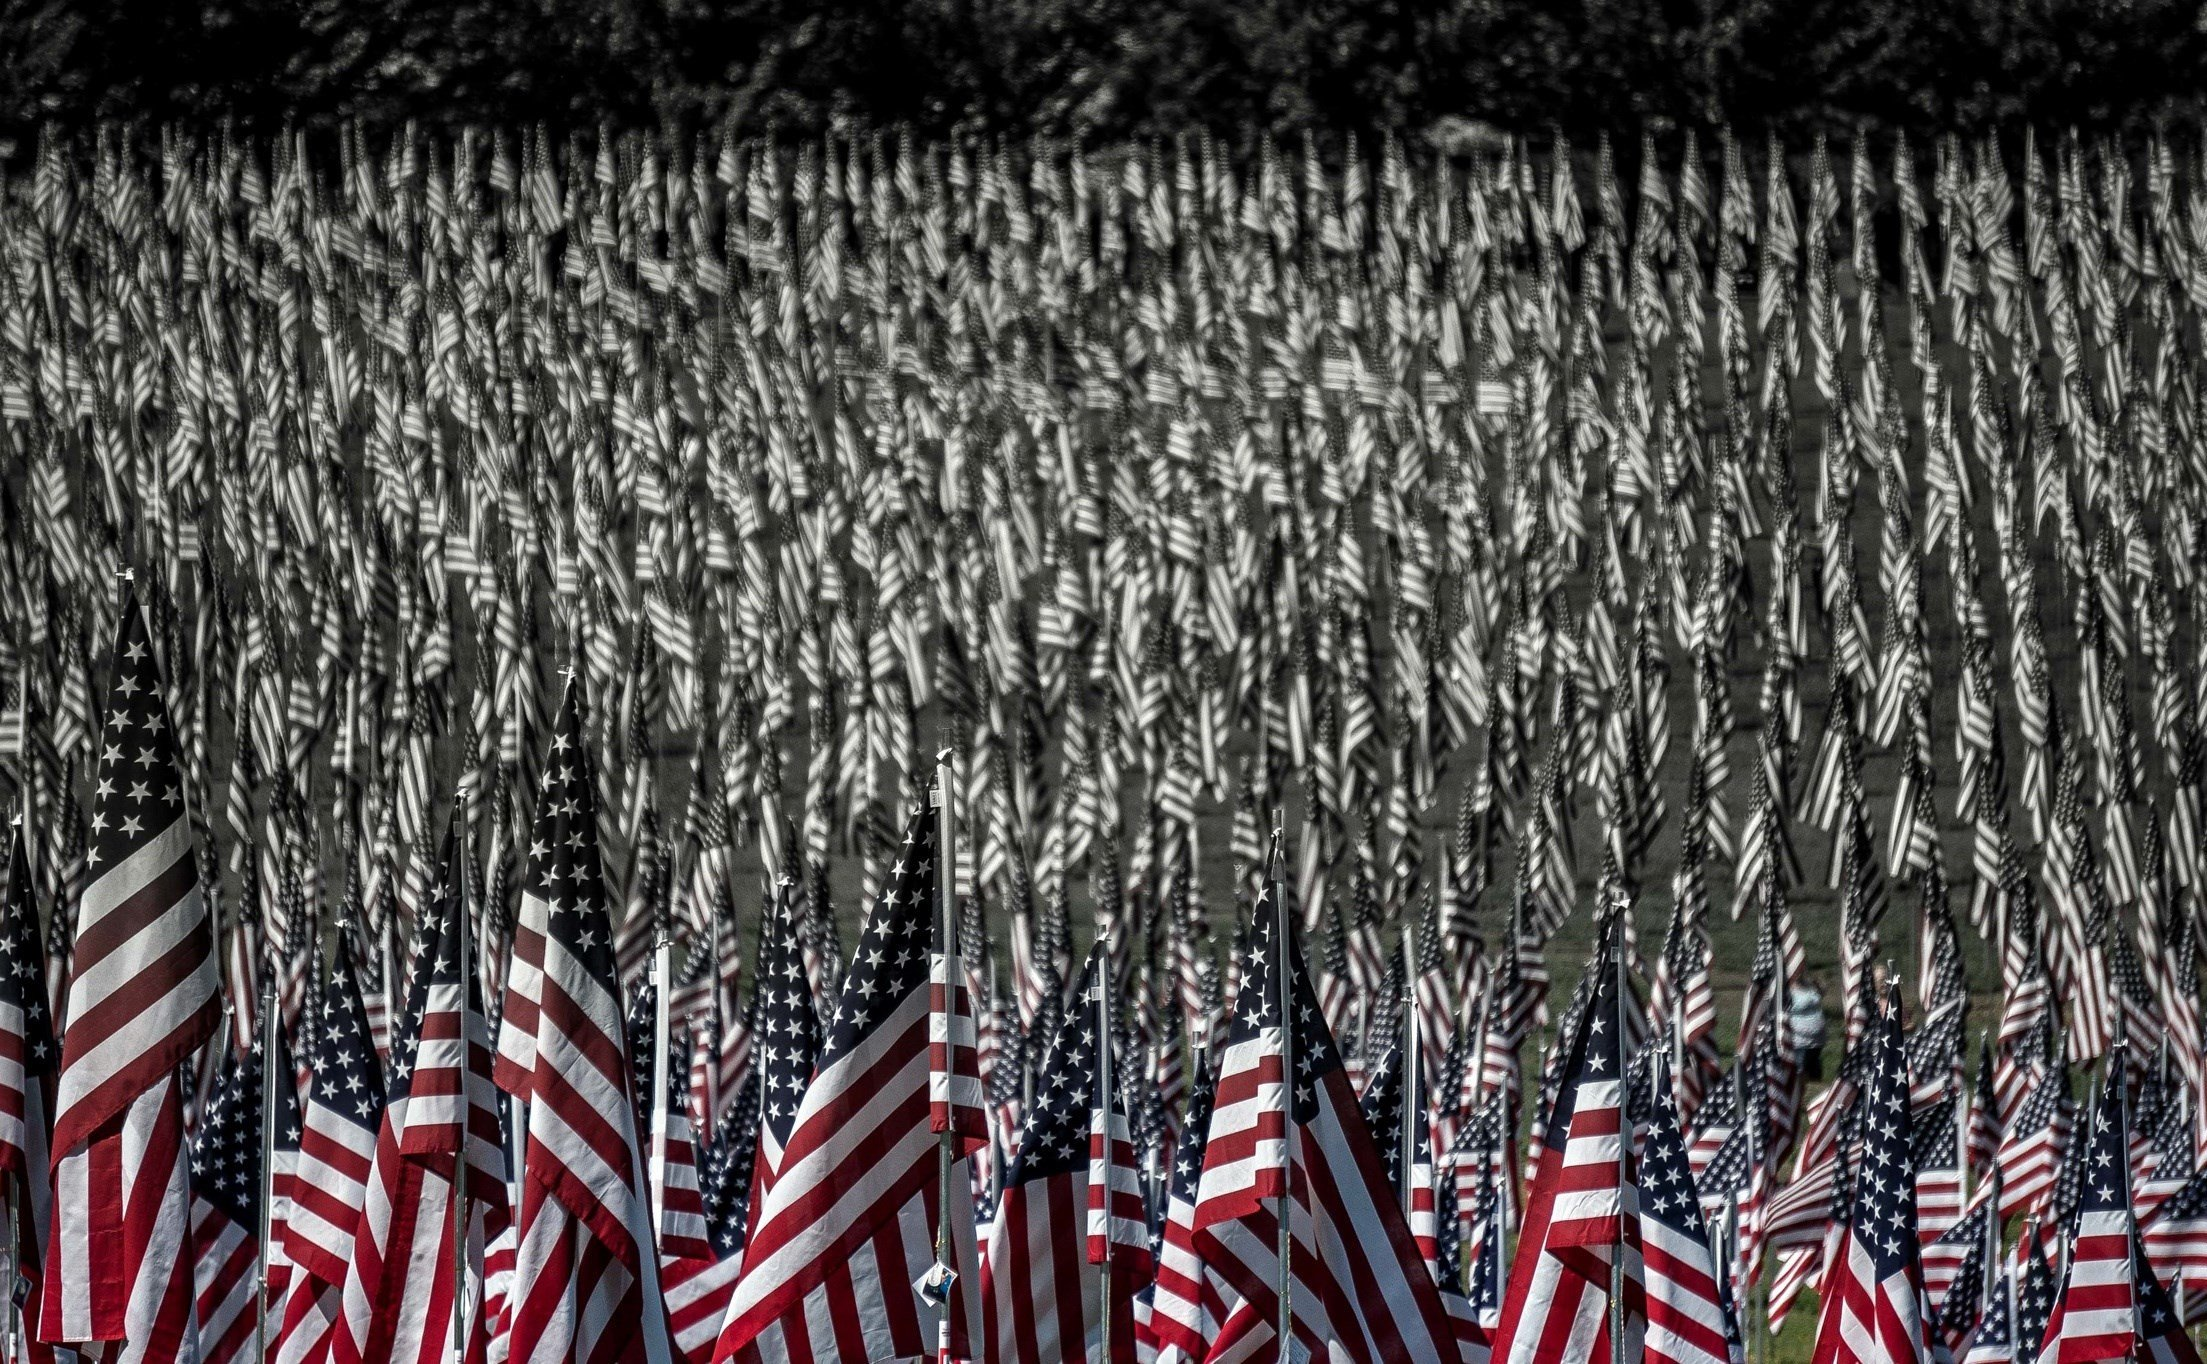 Free Download Memorial Day Wallpaper 60 Images 2207x1364 For